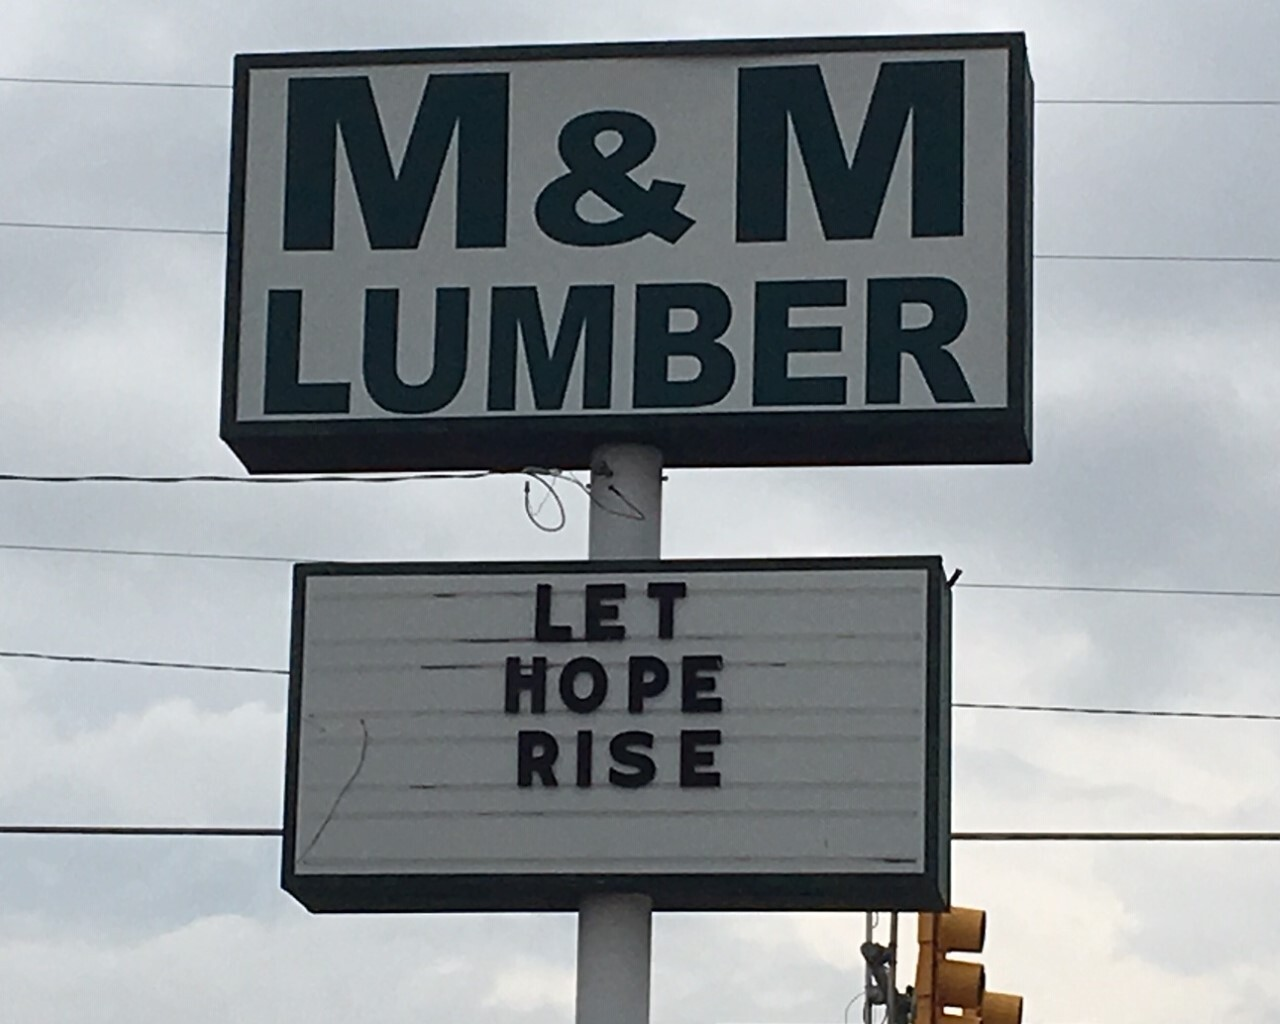 M&M Lumber - Let Hope Rise sign